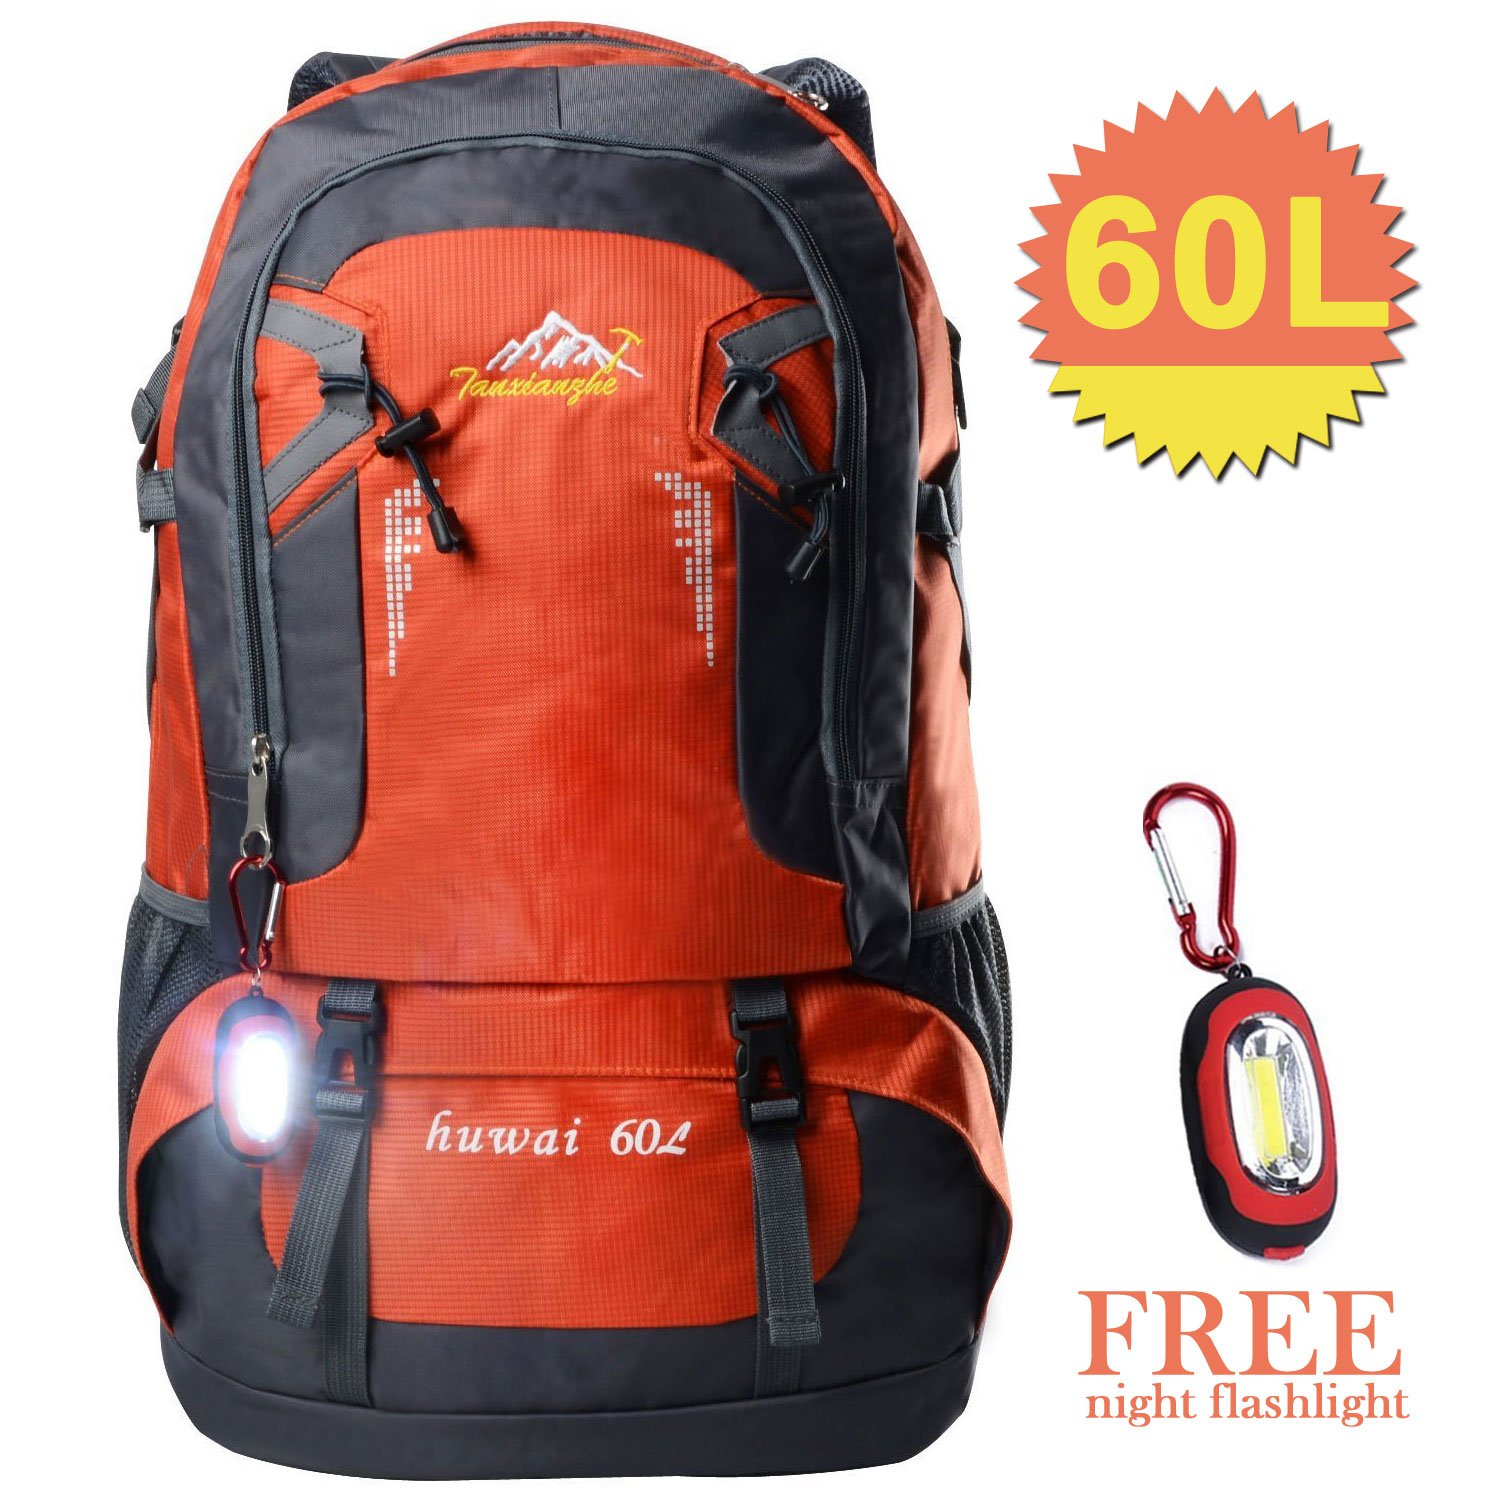 Waterproof Hiking Backpacks, Women and Men Lightweight Travel Daypack Sports Bag for Outdoor Travel Camping Climbing (orange 60L)